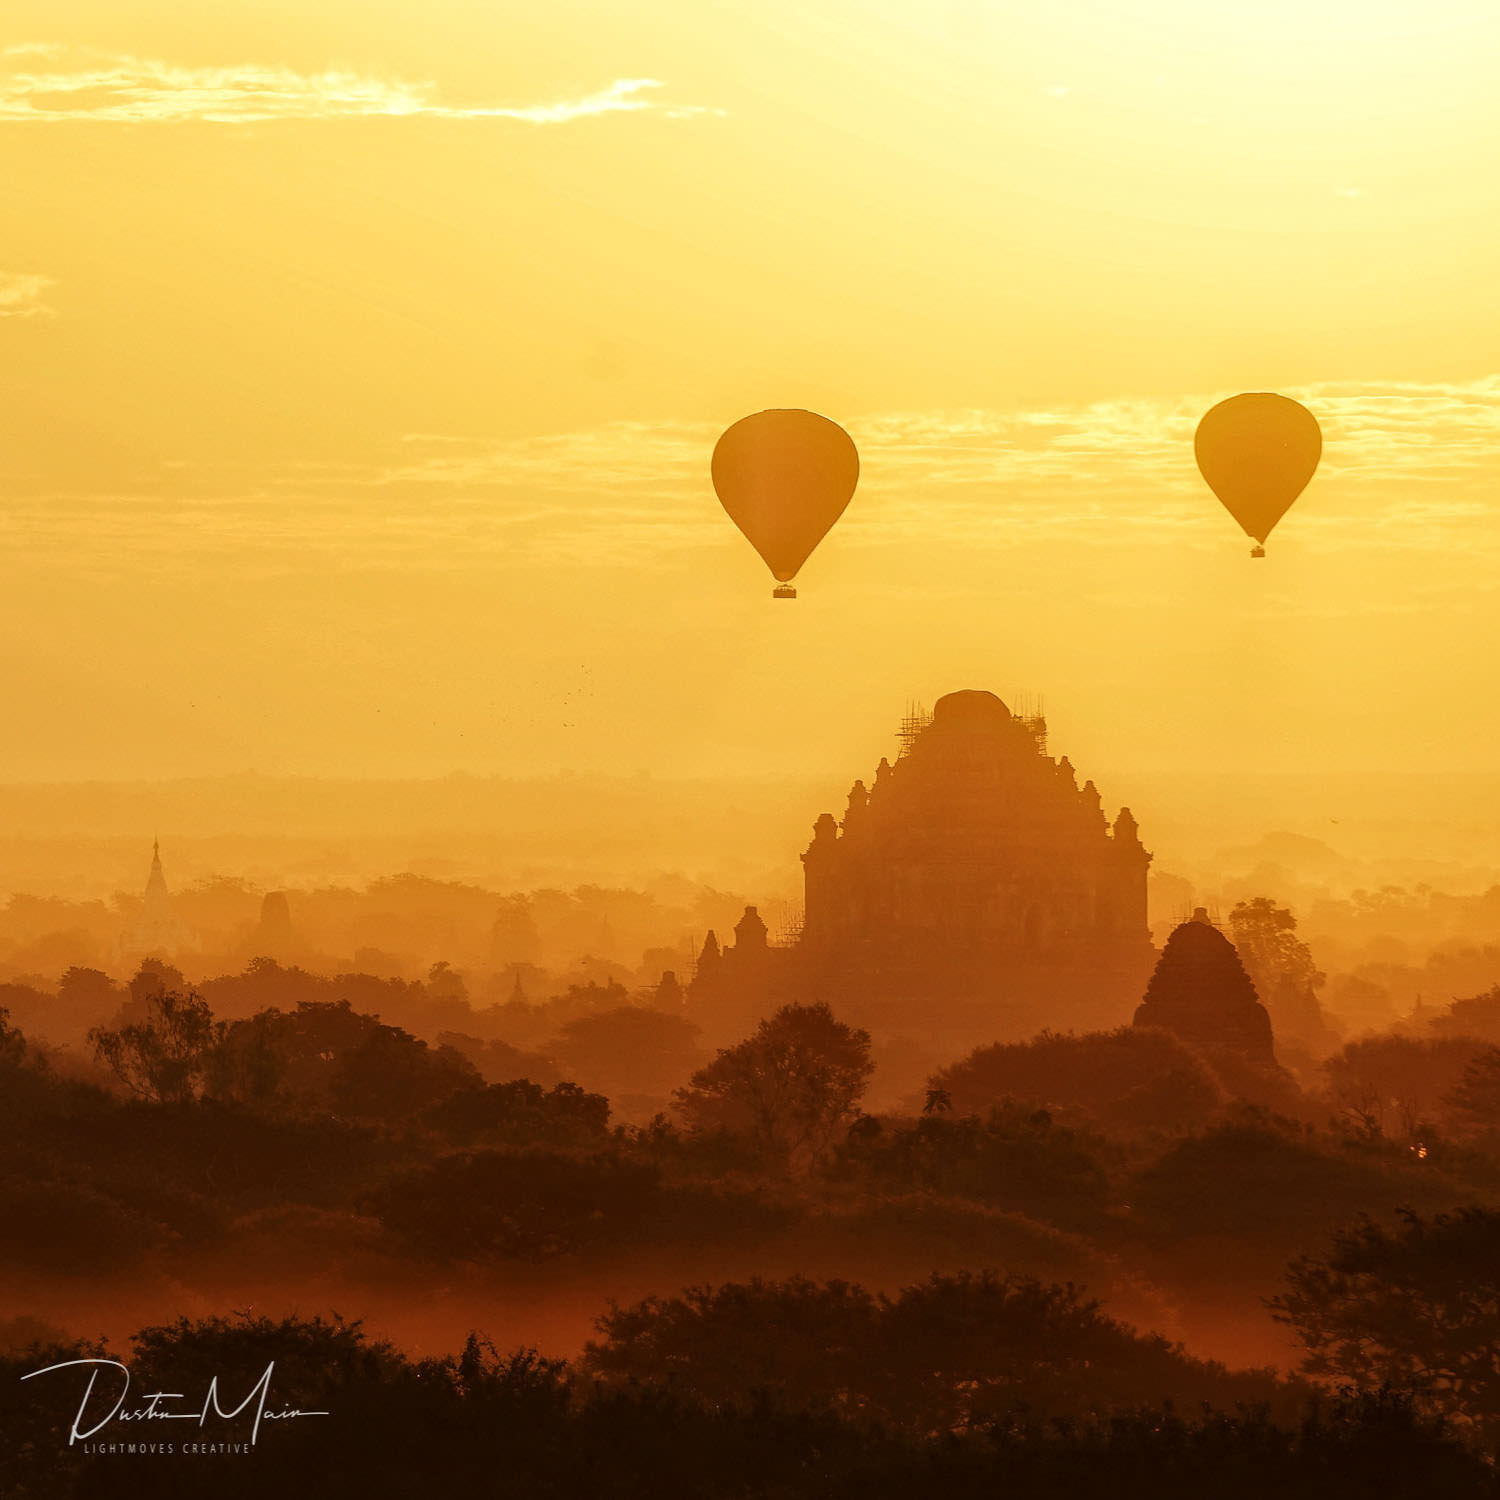 Golden sunrise with hot air balloons in Bagan, Myanmar. © Dustin Main 2017